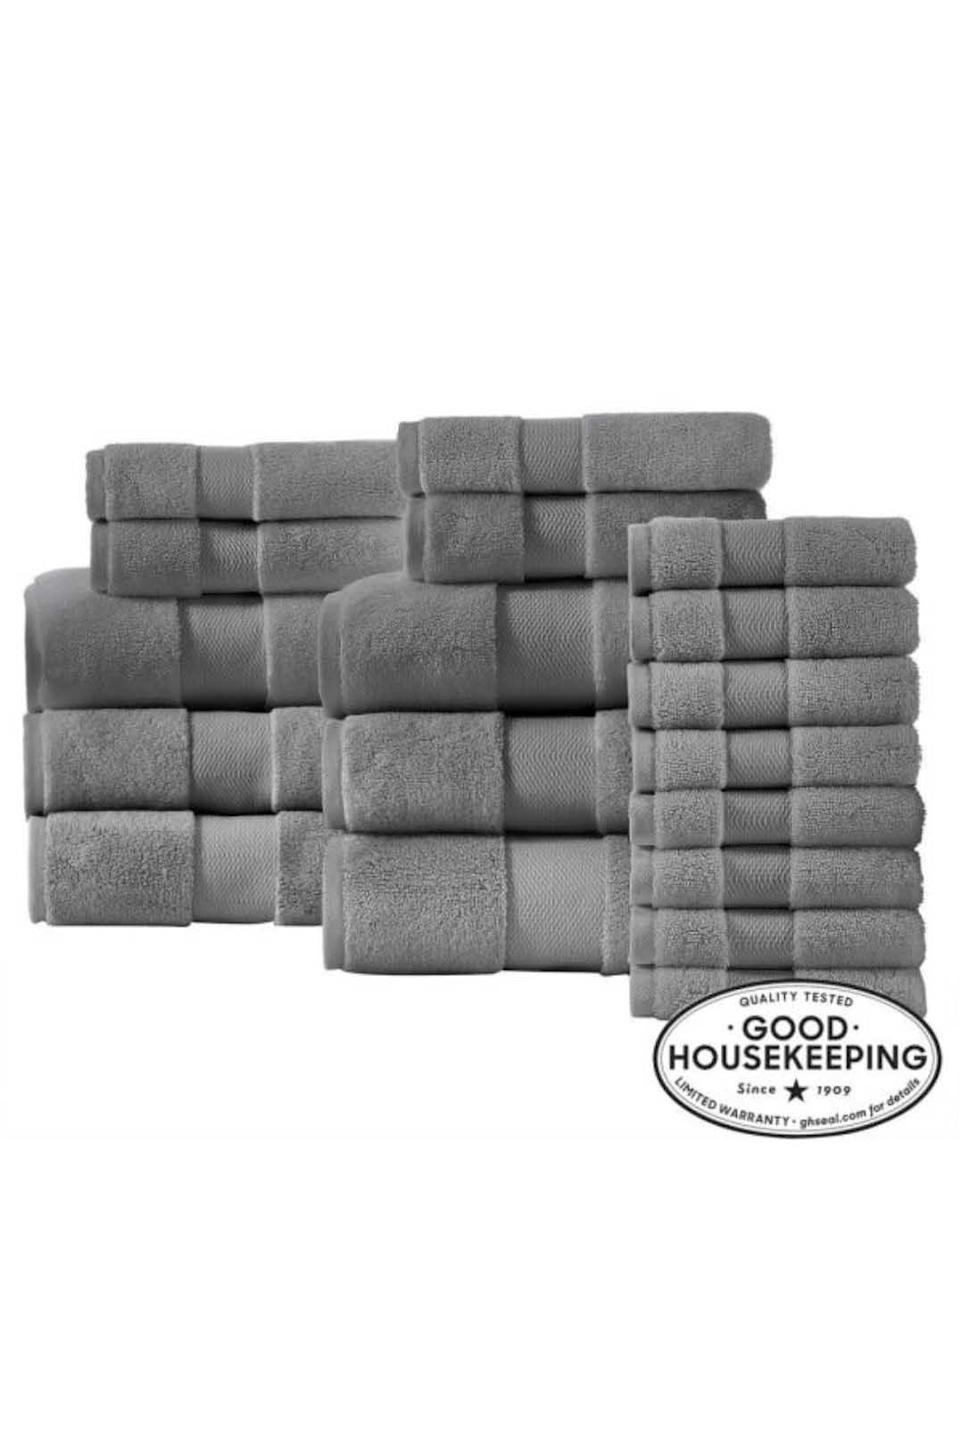 """<p><strong>Home Decorators Collection</strong></p><p>homedepot.com</p><p><strong>$158.00</strong></p><p><a href=""""https://go.redirectingat.com?id=74968X1596630&url=https%3A%2F%2Fwww.homedepot.com%2Fp%2FHome-Decorators-Collection-Plush-Soft-Cotton-18-Piece-Towel-Set-in-Stone-Gray-91306ABHWS18%2F310240450&sref=https%3A%2F%2Fwww.goodhousekeeping.com%2Fhome-products%2Ftowel-reviews%2Fg5037%2Fbest-bath-towel-reviews%2F"""" rel=""""nofollow noopener"""" target=""""_blank"""" data-ylk=""""slk:Shop Now"""" class=""""link rapid-noclick-resp"""">Shop Now</a></p>"""